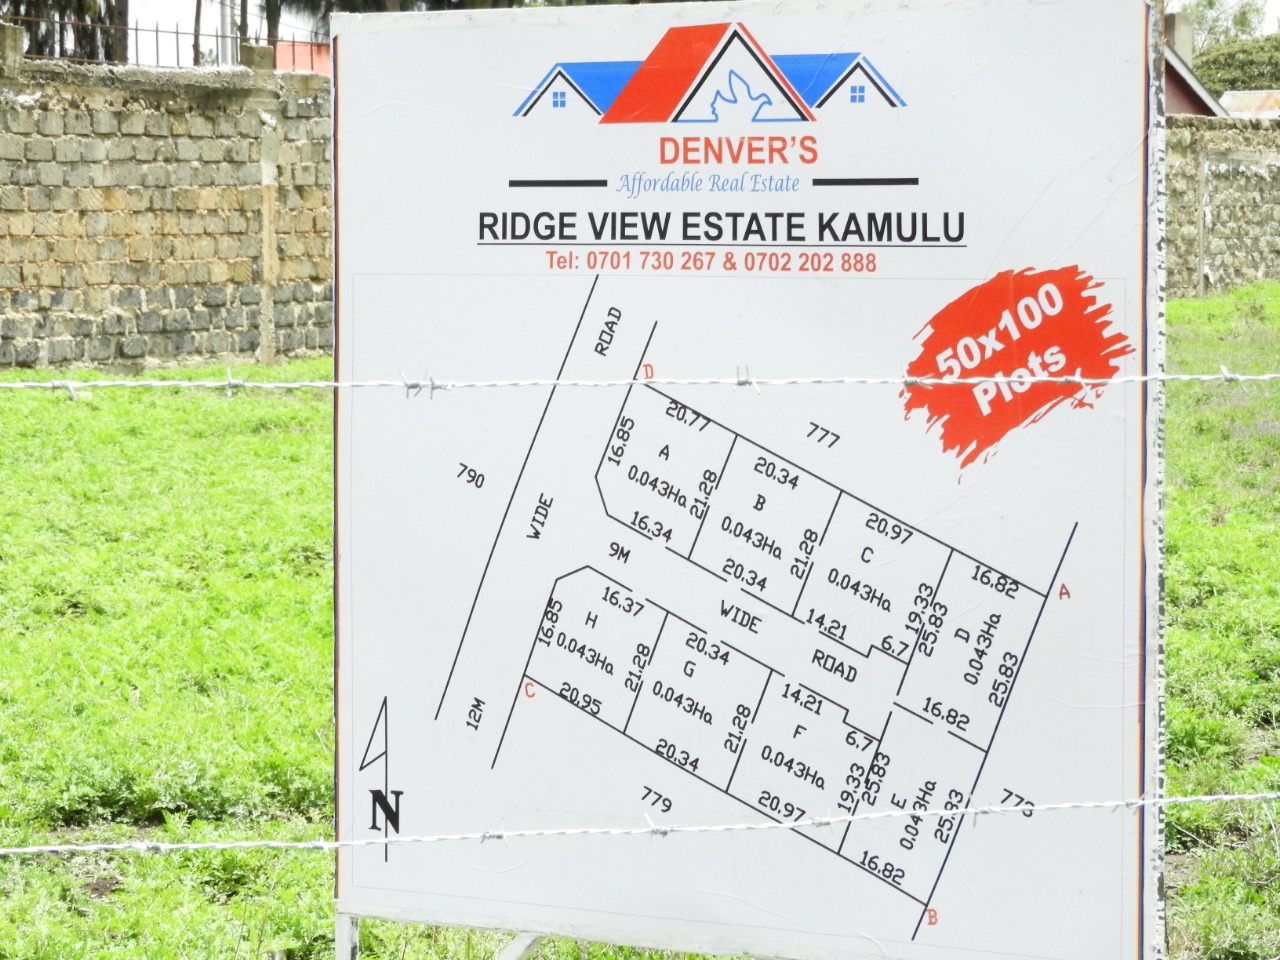 Loss of Land if it stays idle more than 10 years